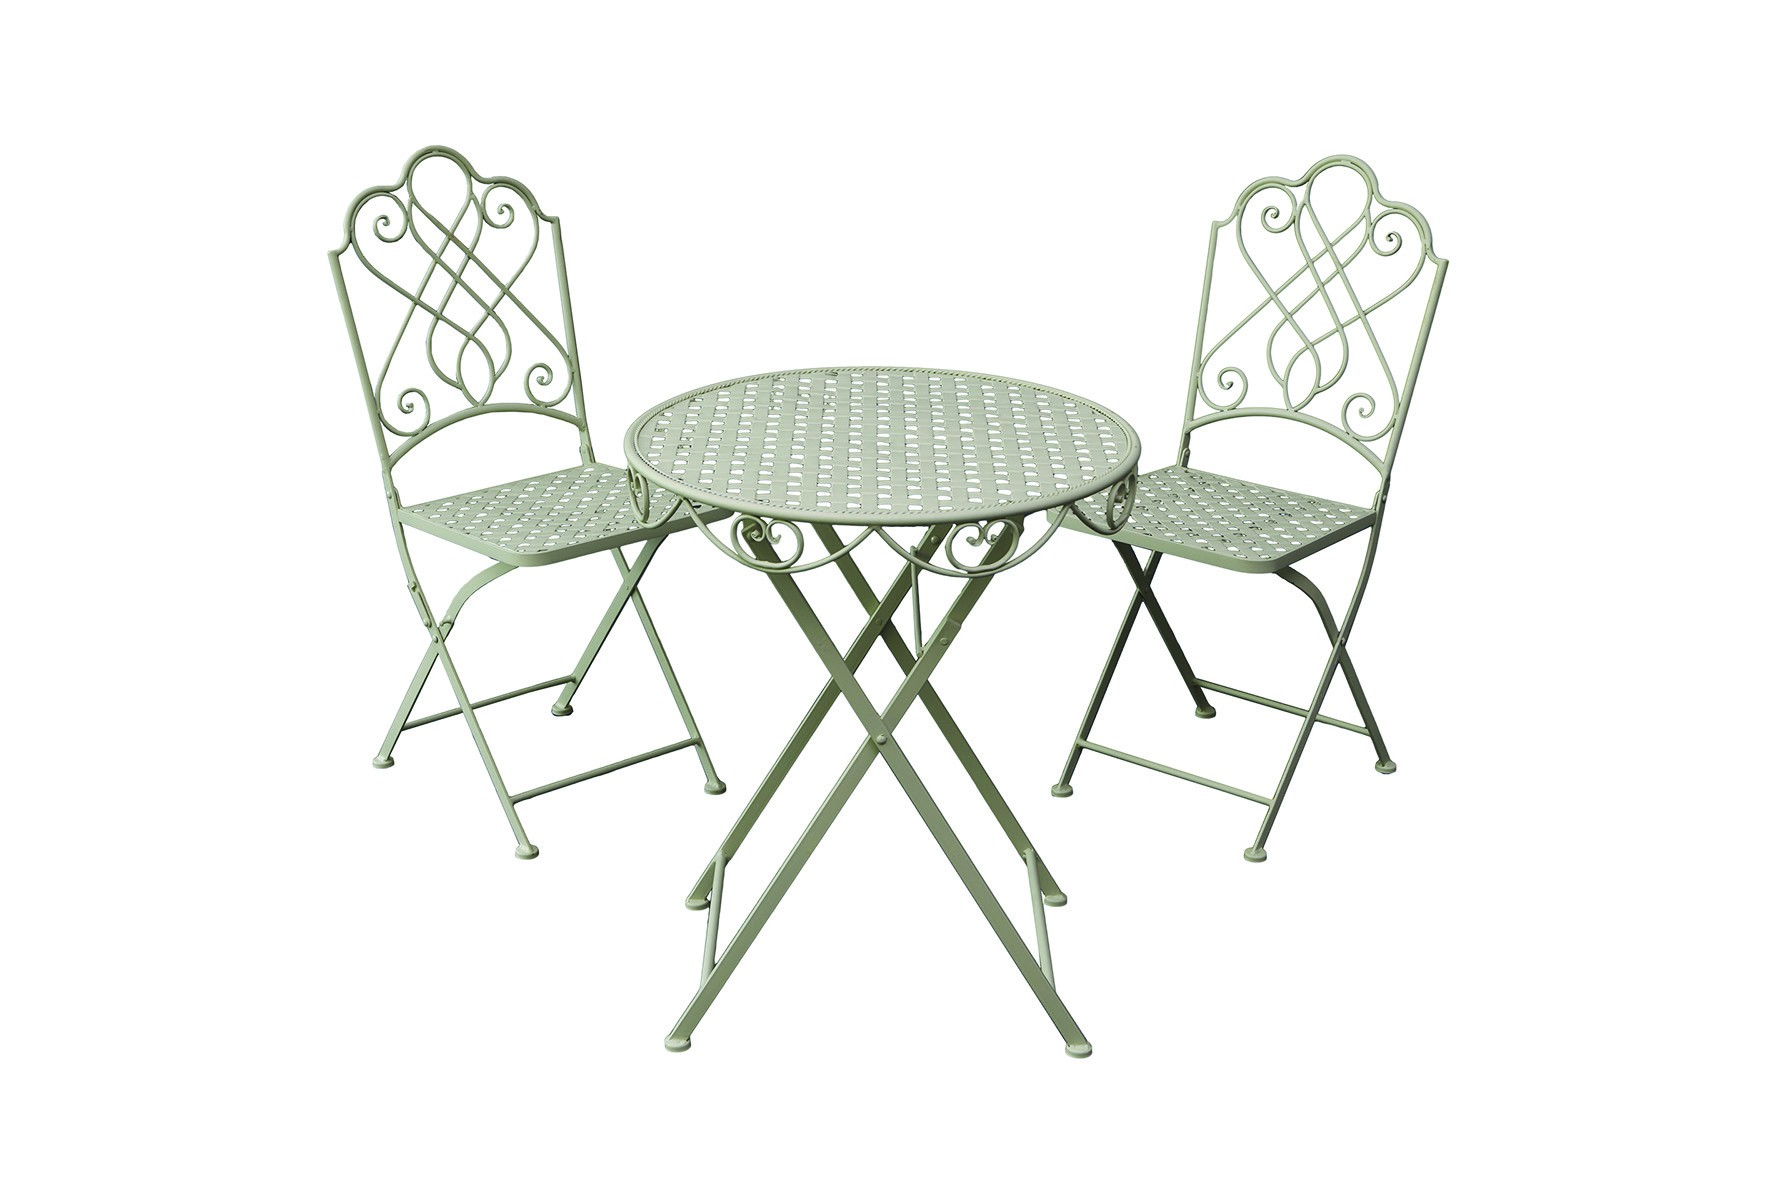 pulverbeschichtetes bistro set garten garnitur sitzgruppe 2 st hle tisch metall garten gartenm bel. Black Bedroom Furniture Sets. Home Design Ideas